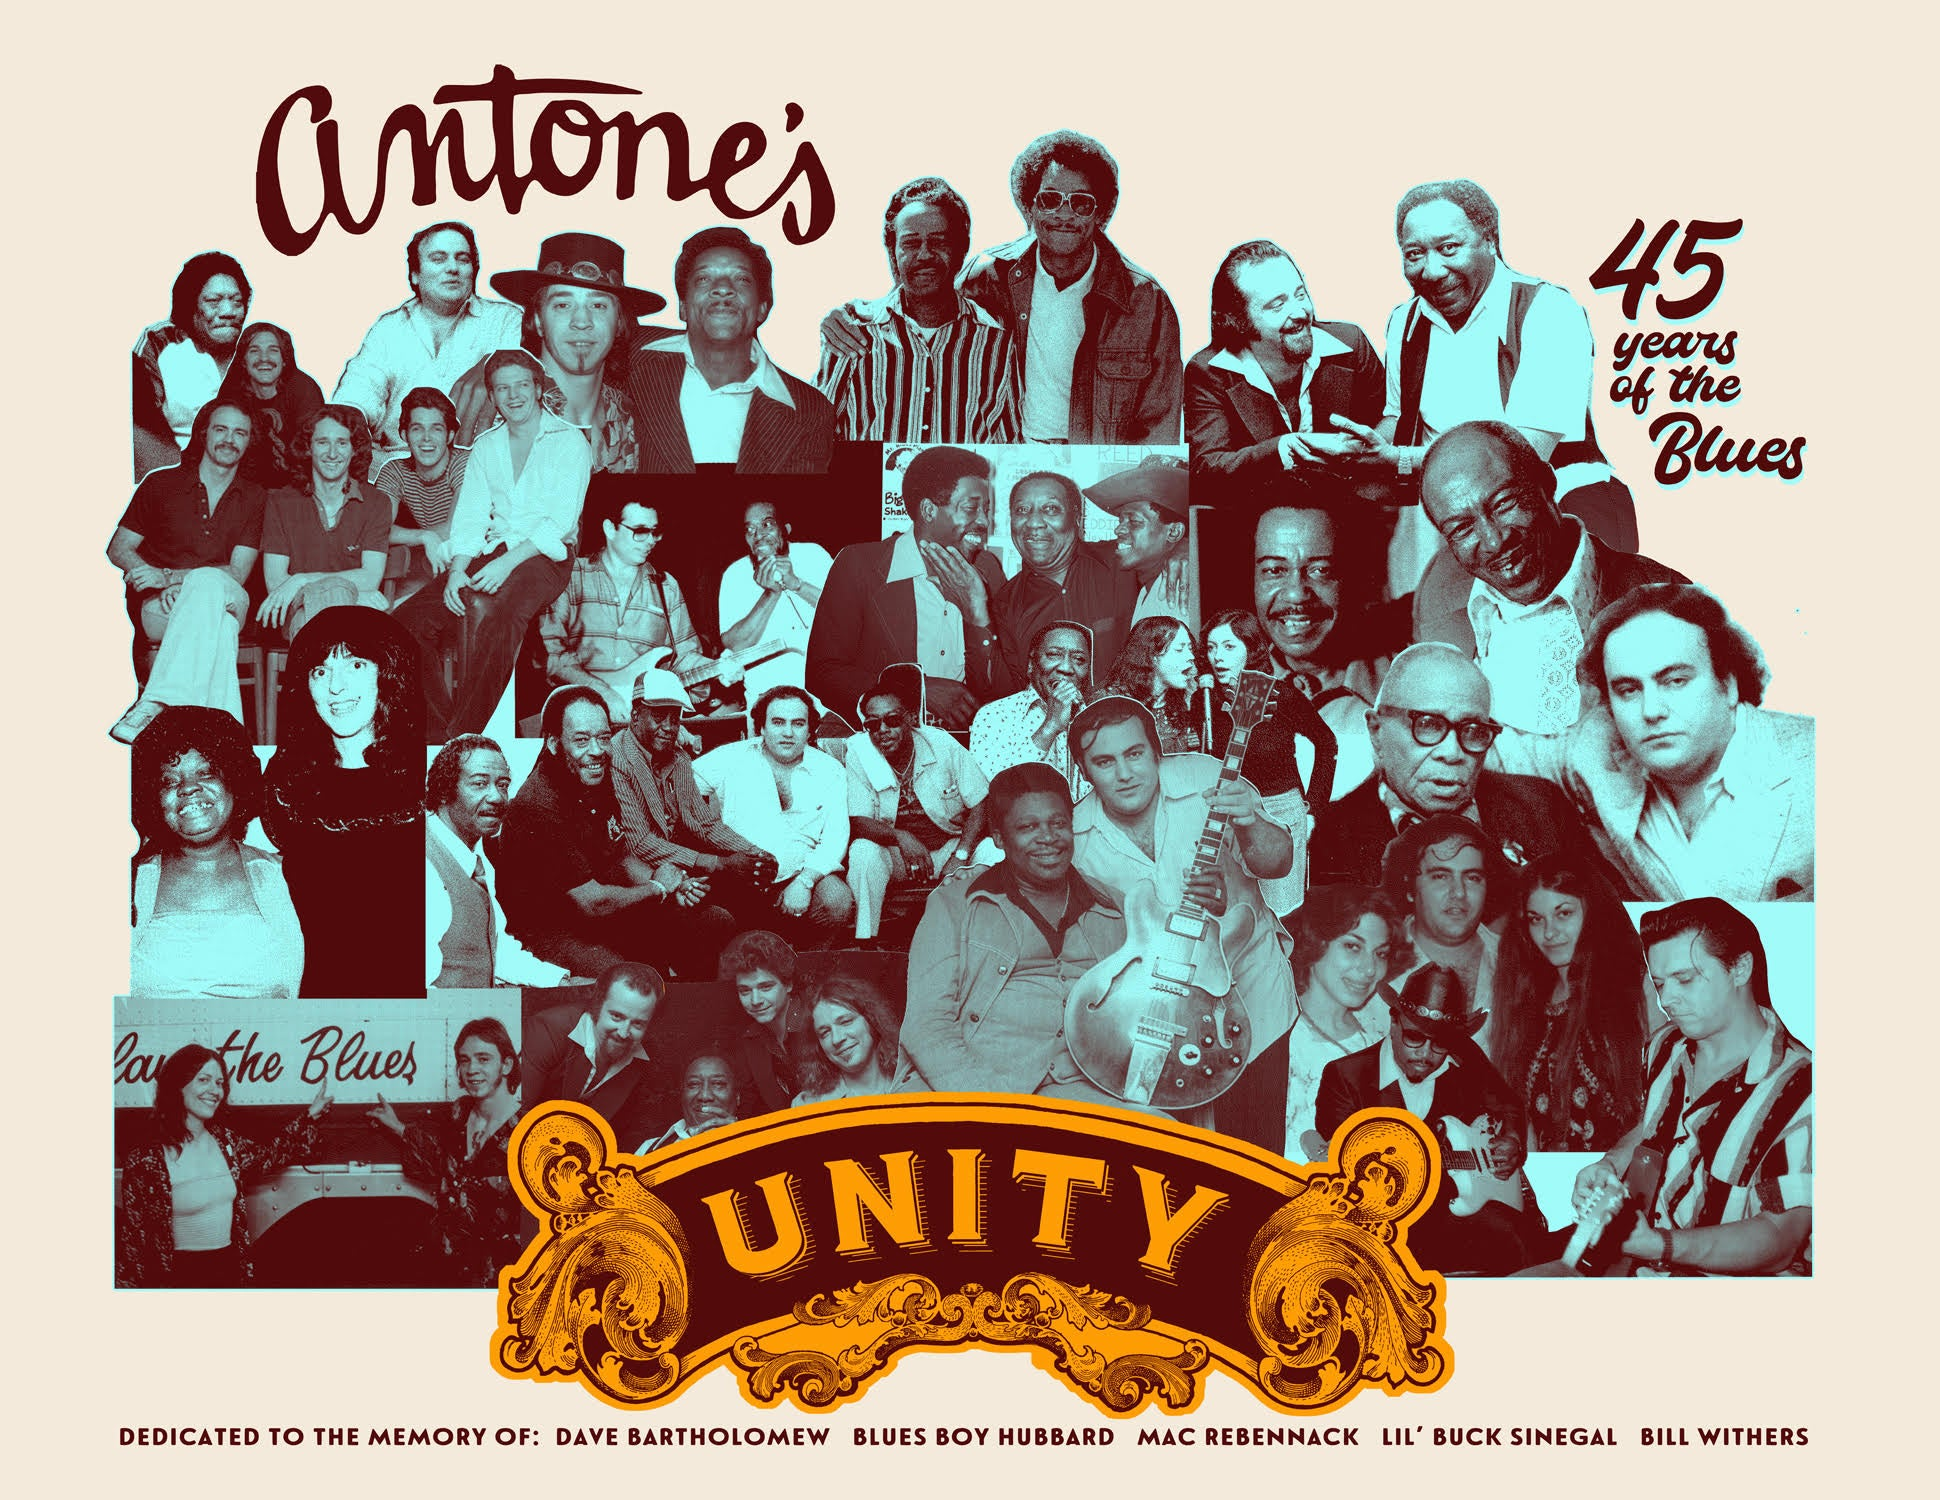 """Unity"" Antone's 45th Anniversary Commemorative Poster"